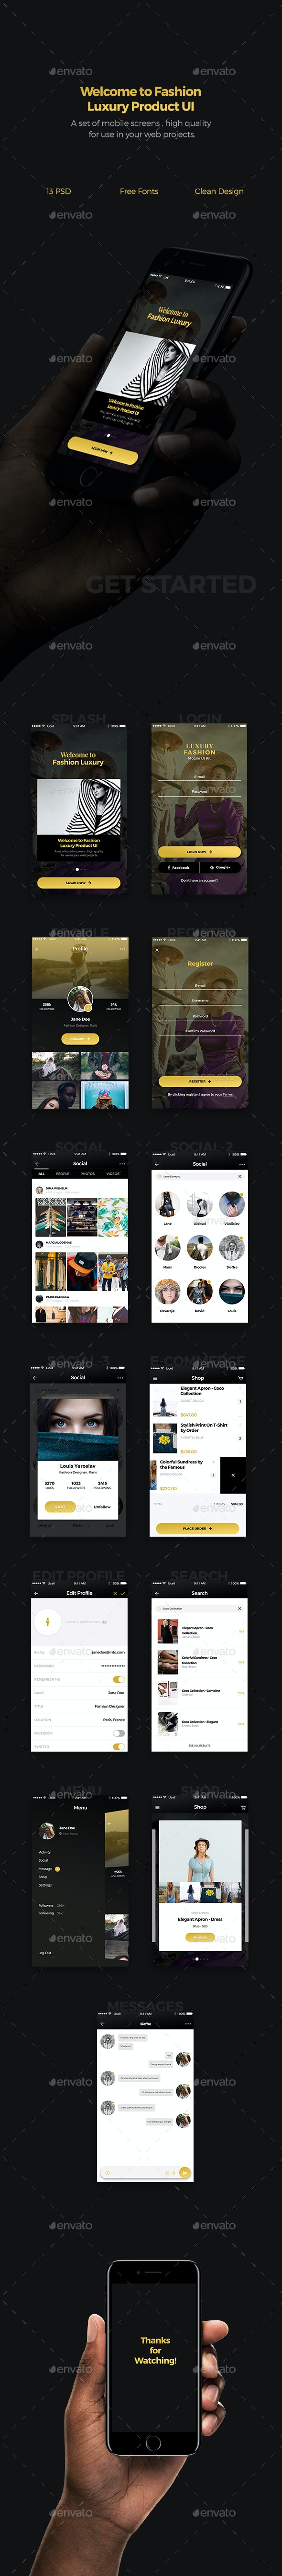 Fashion Luxury Product Mobile UI